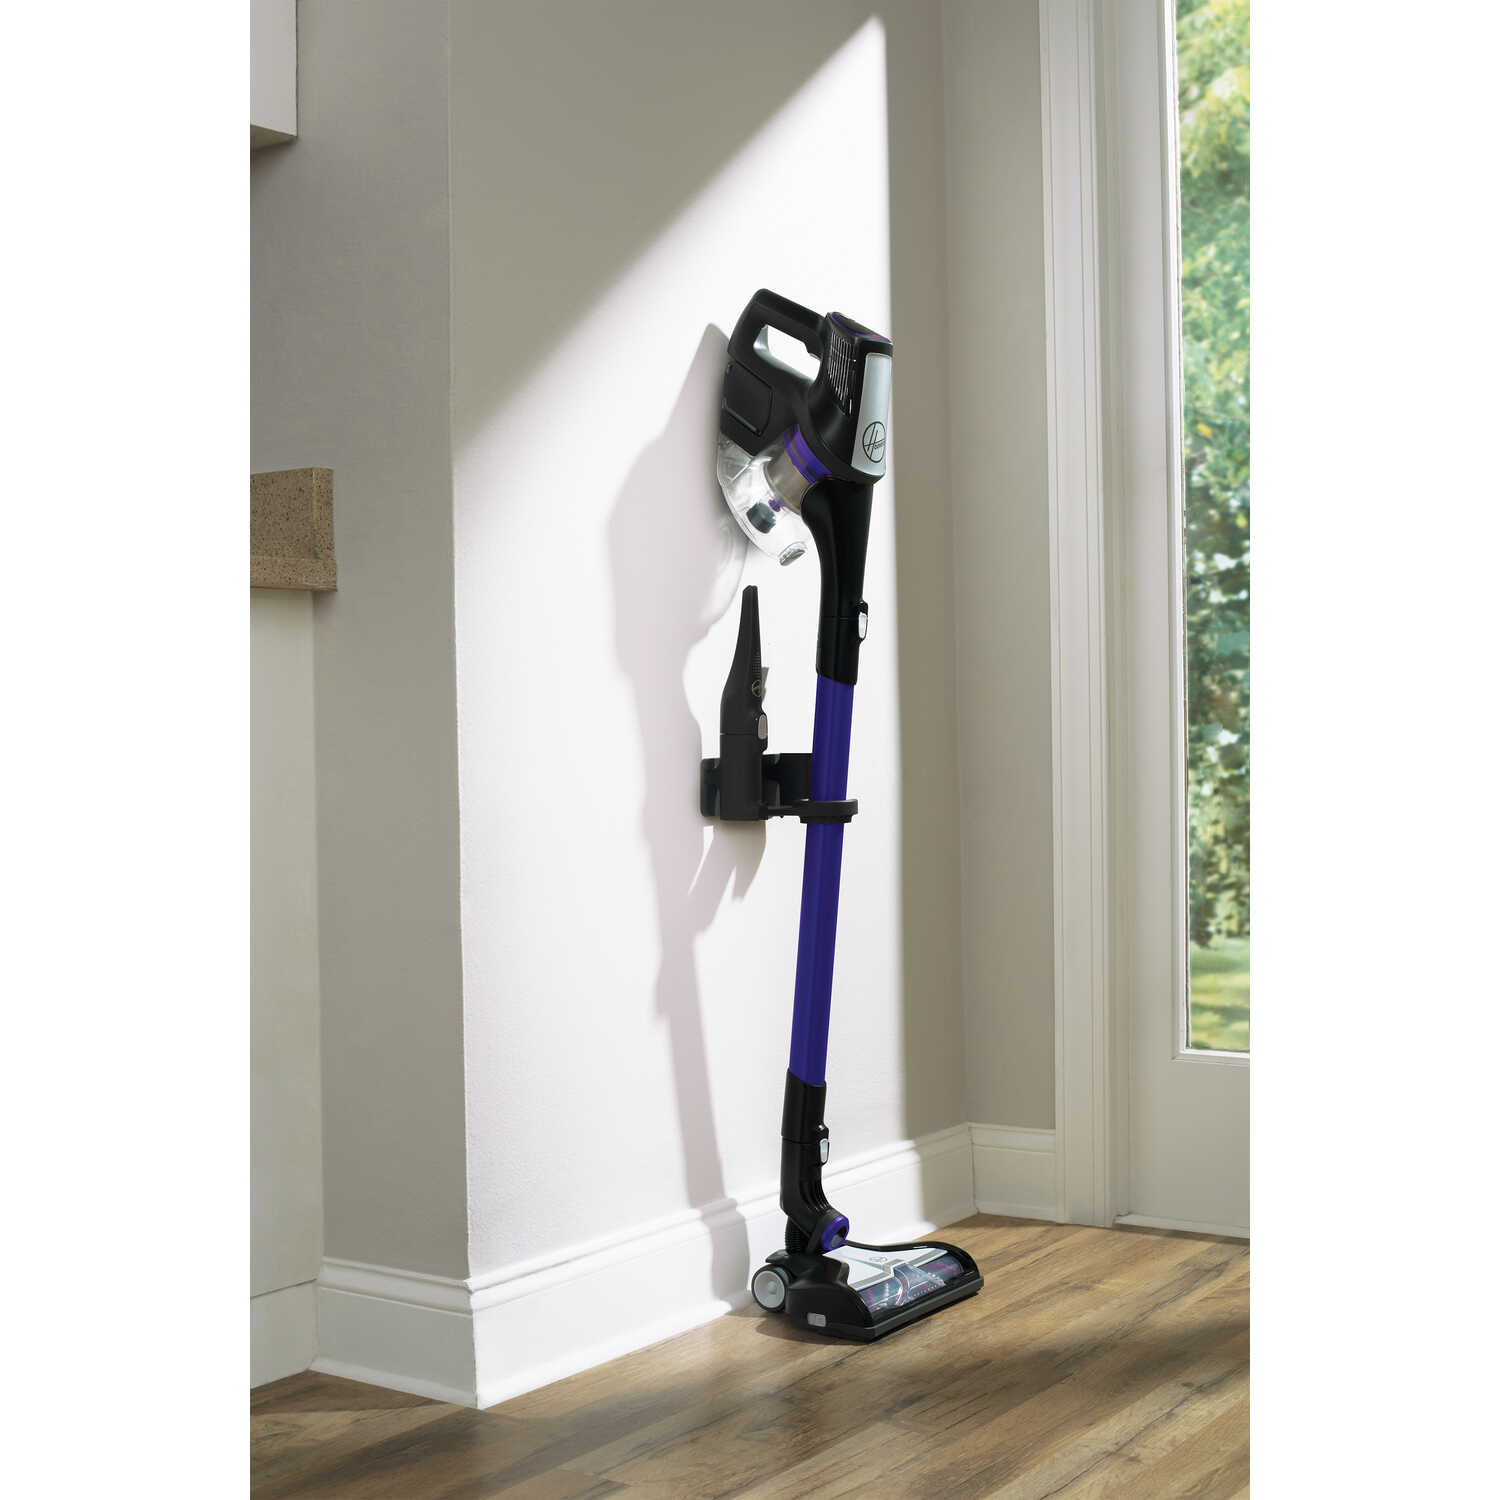 Hoover  Fusion Pet  Bagless  Cordless  Stick Vacuum  24 amps Standard  Blue